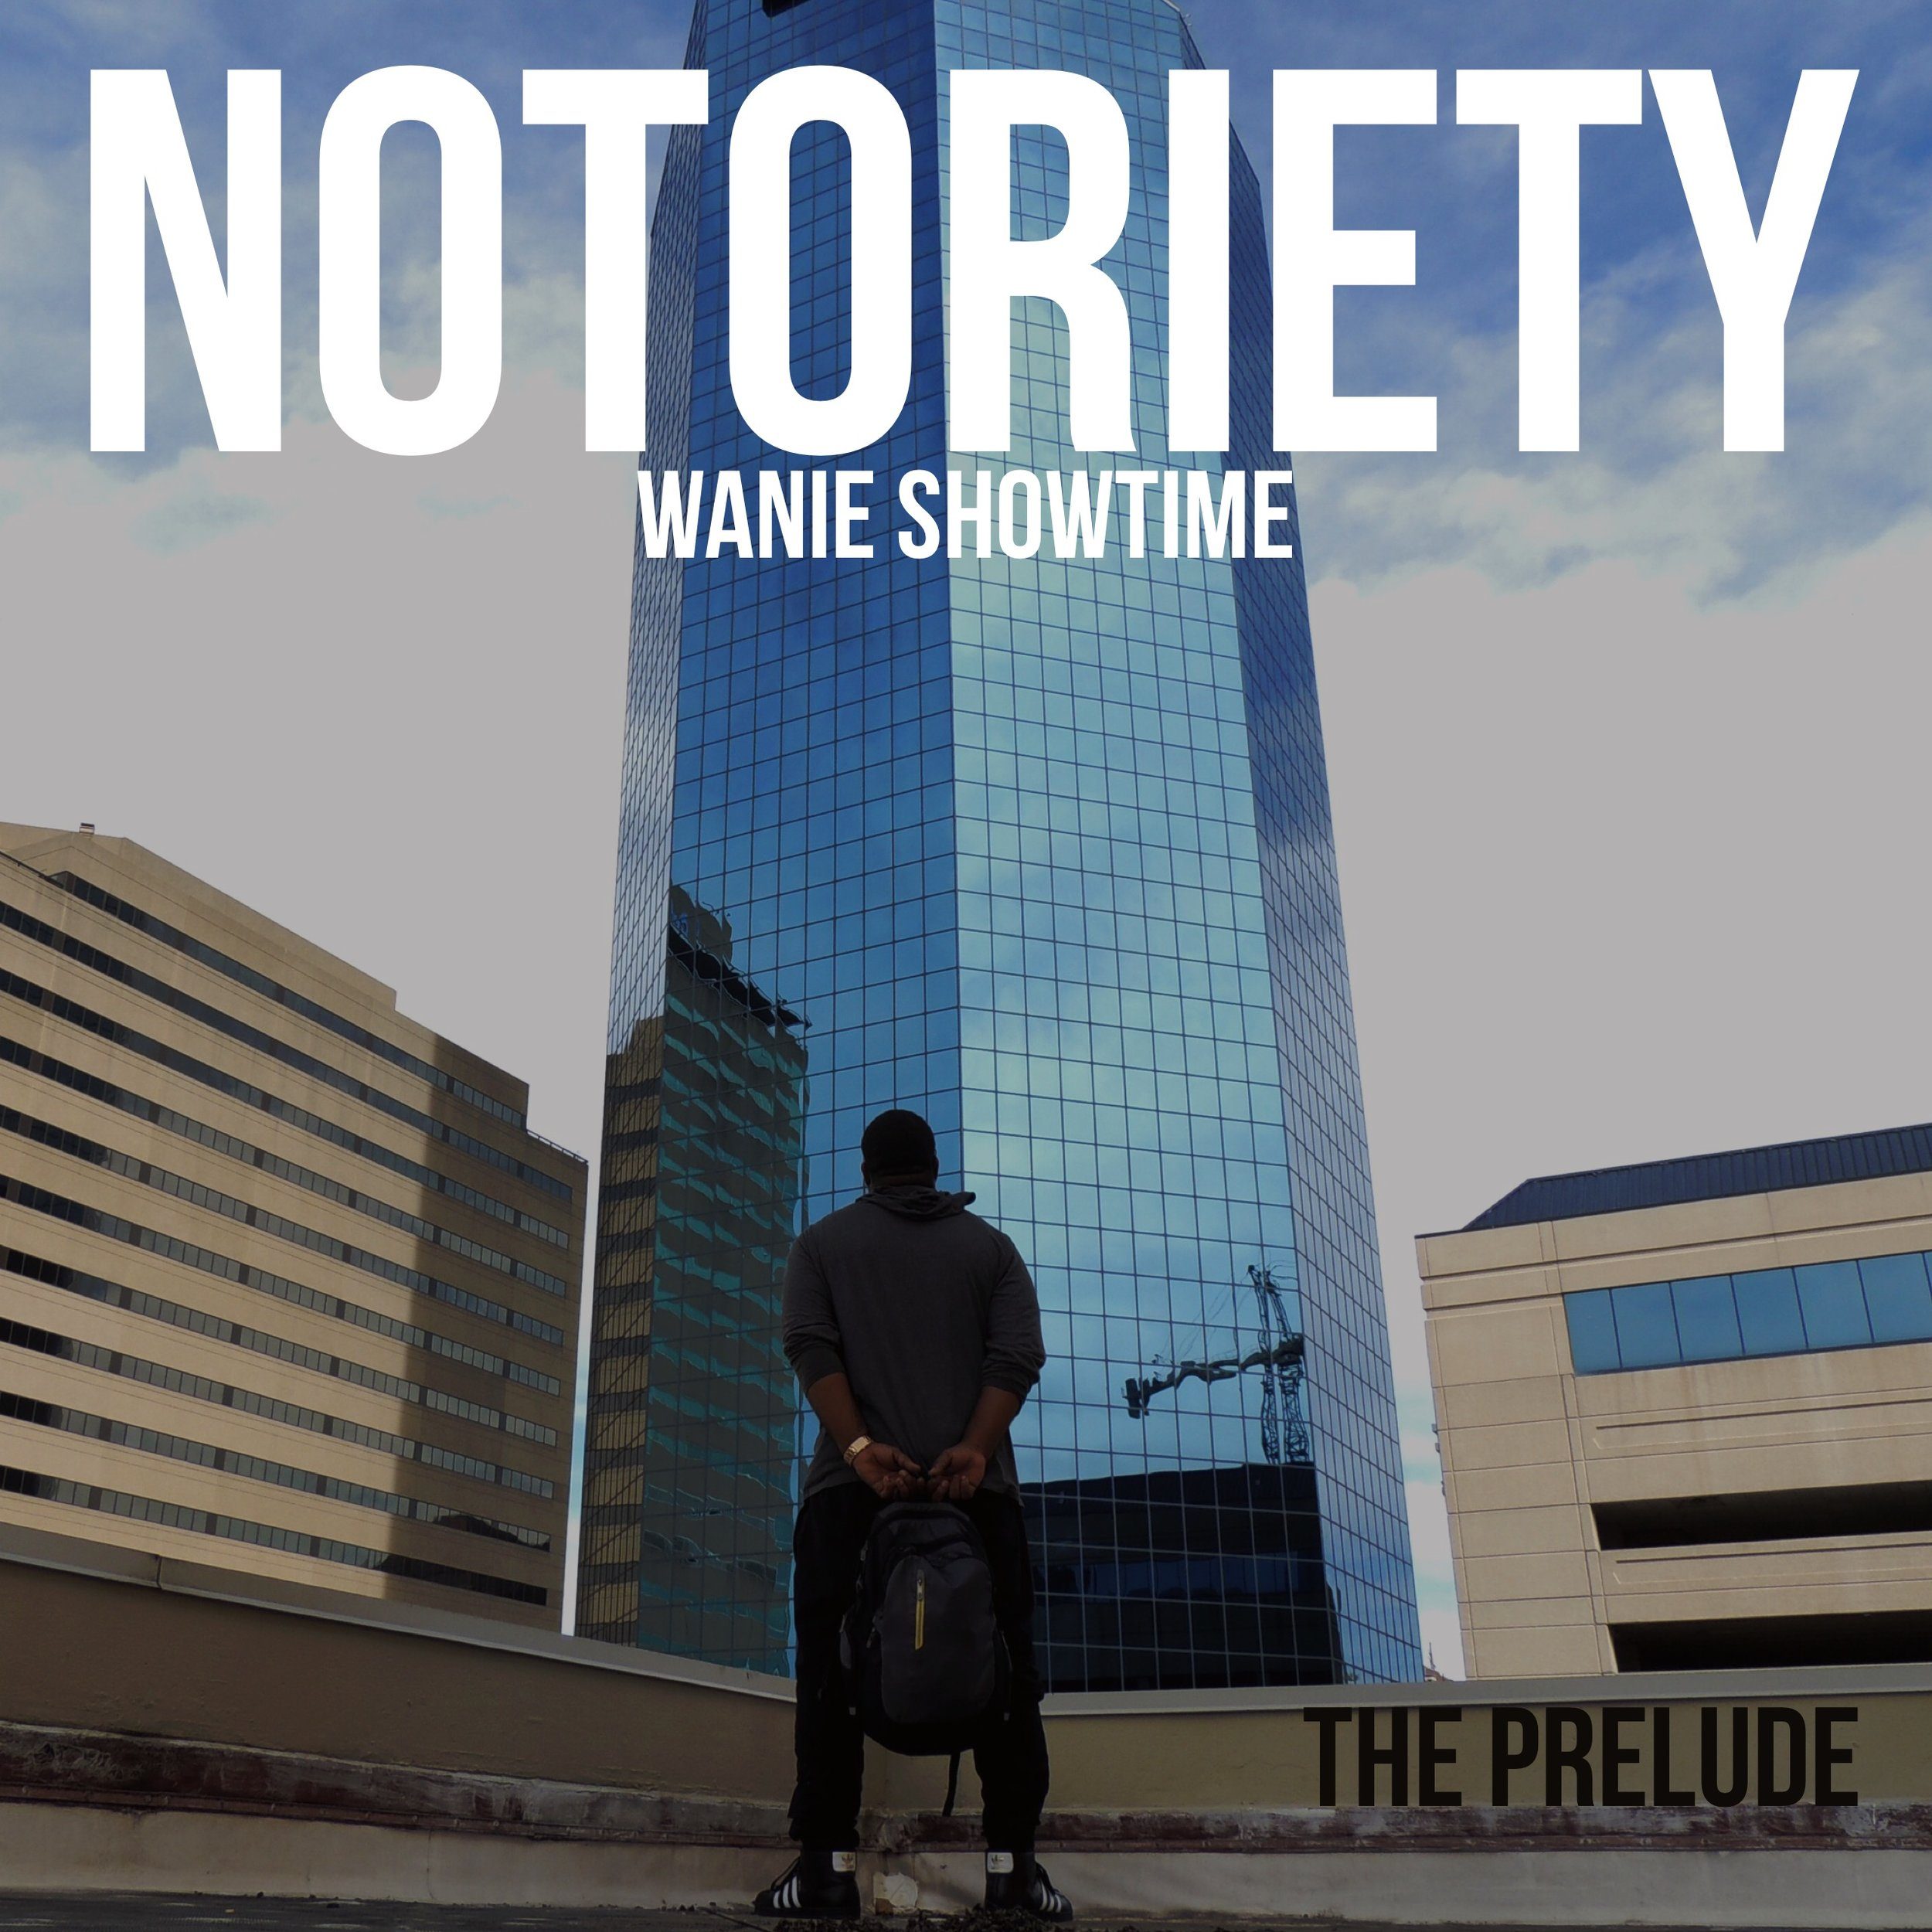 WANIE SHOWTIME - NOTORIETY THE PRELUDE EP [COVER ART- FRONT].JPG